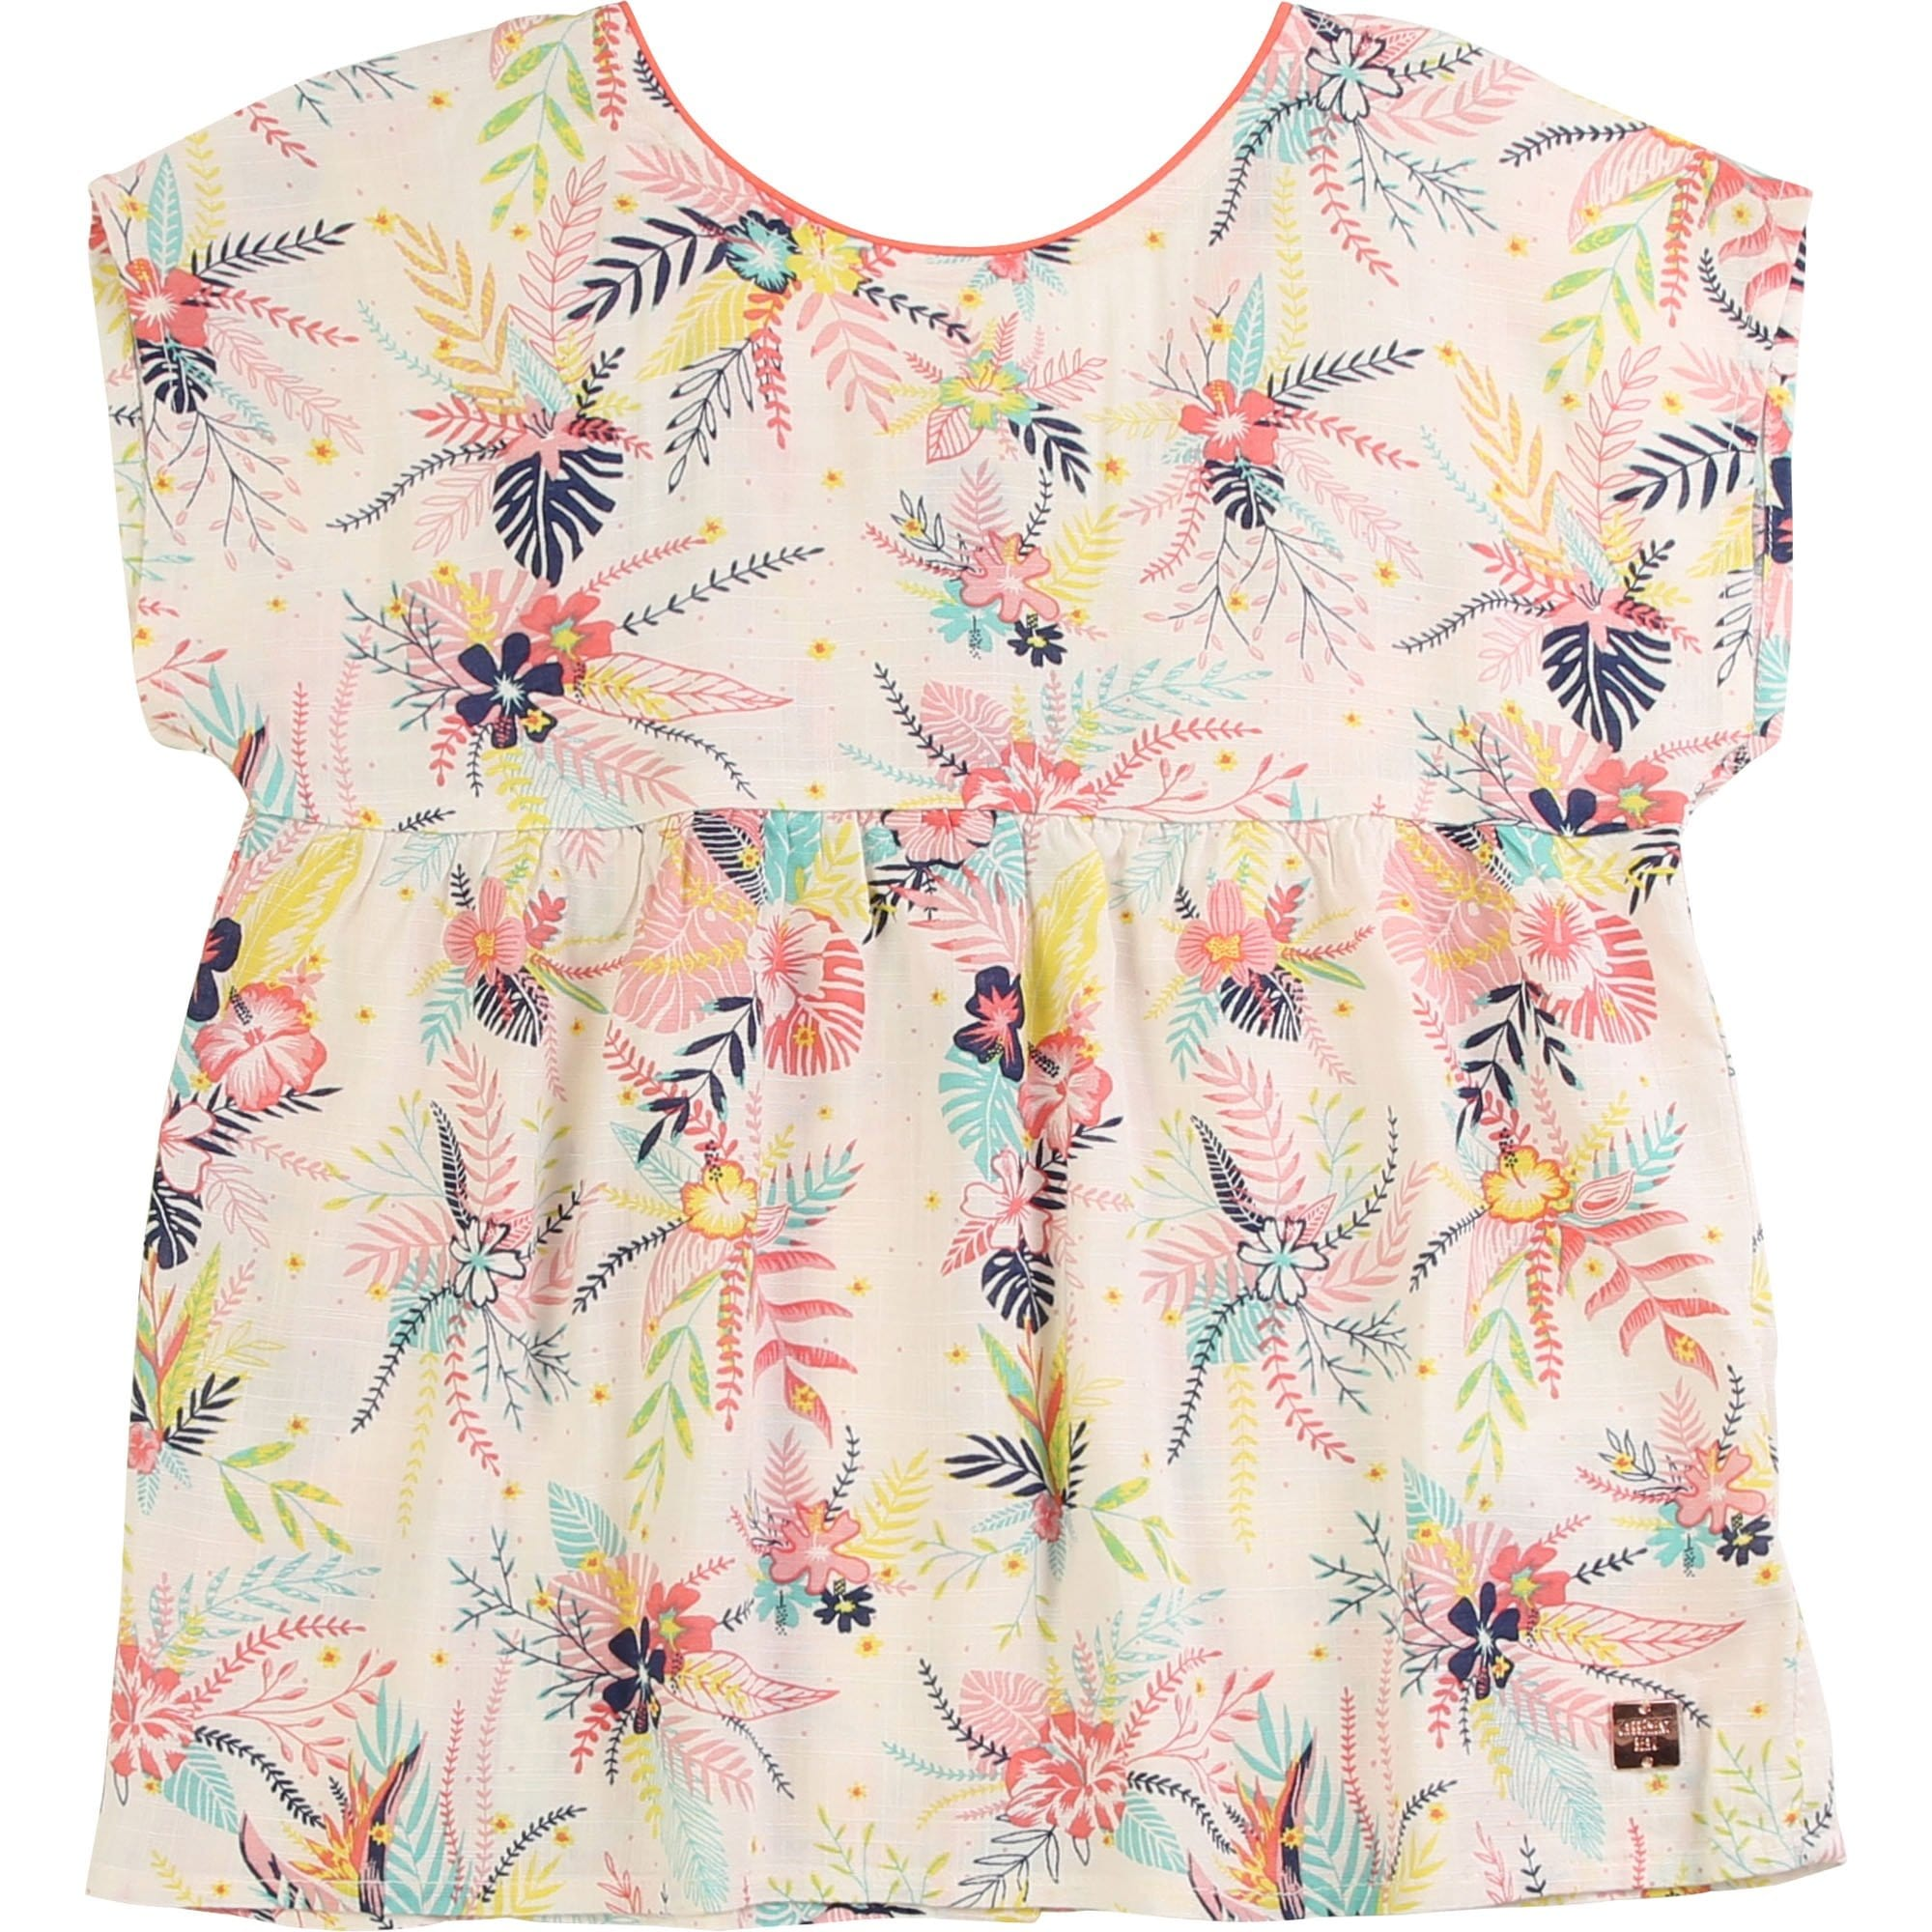 Carrement Beau Floral Top